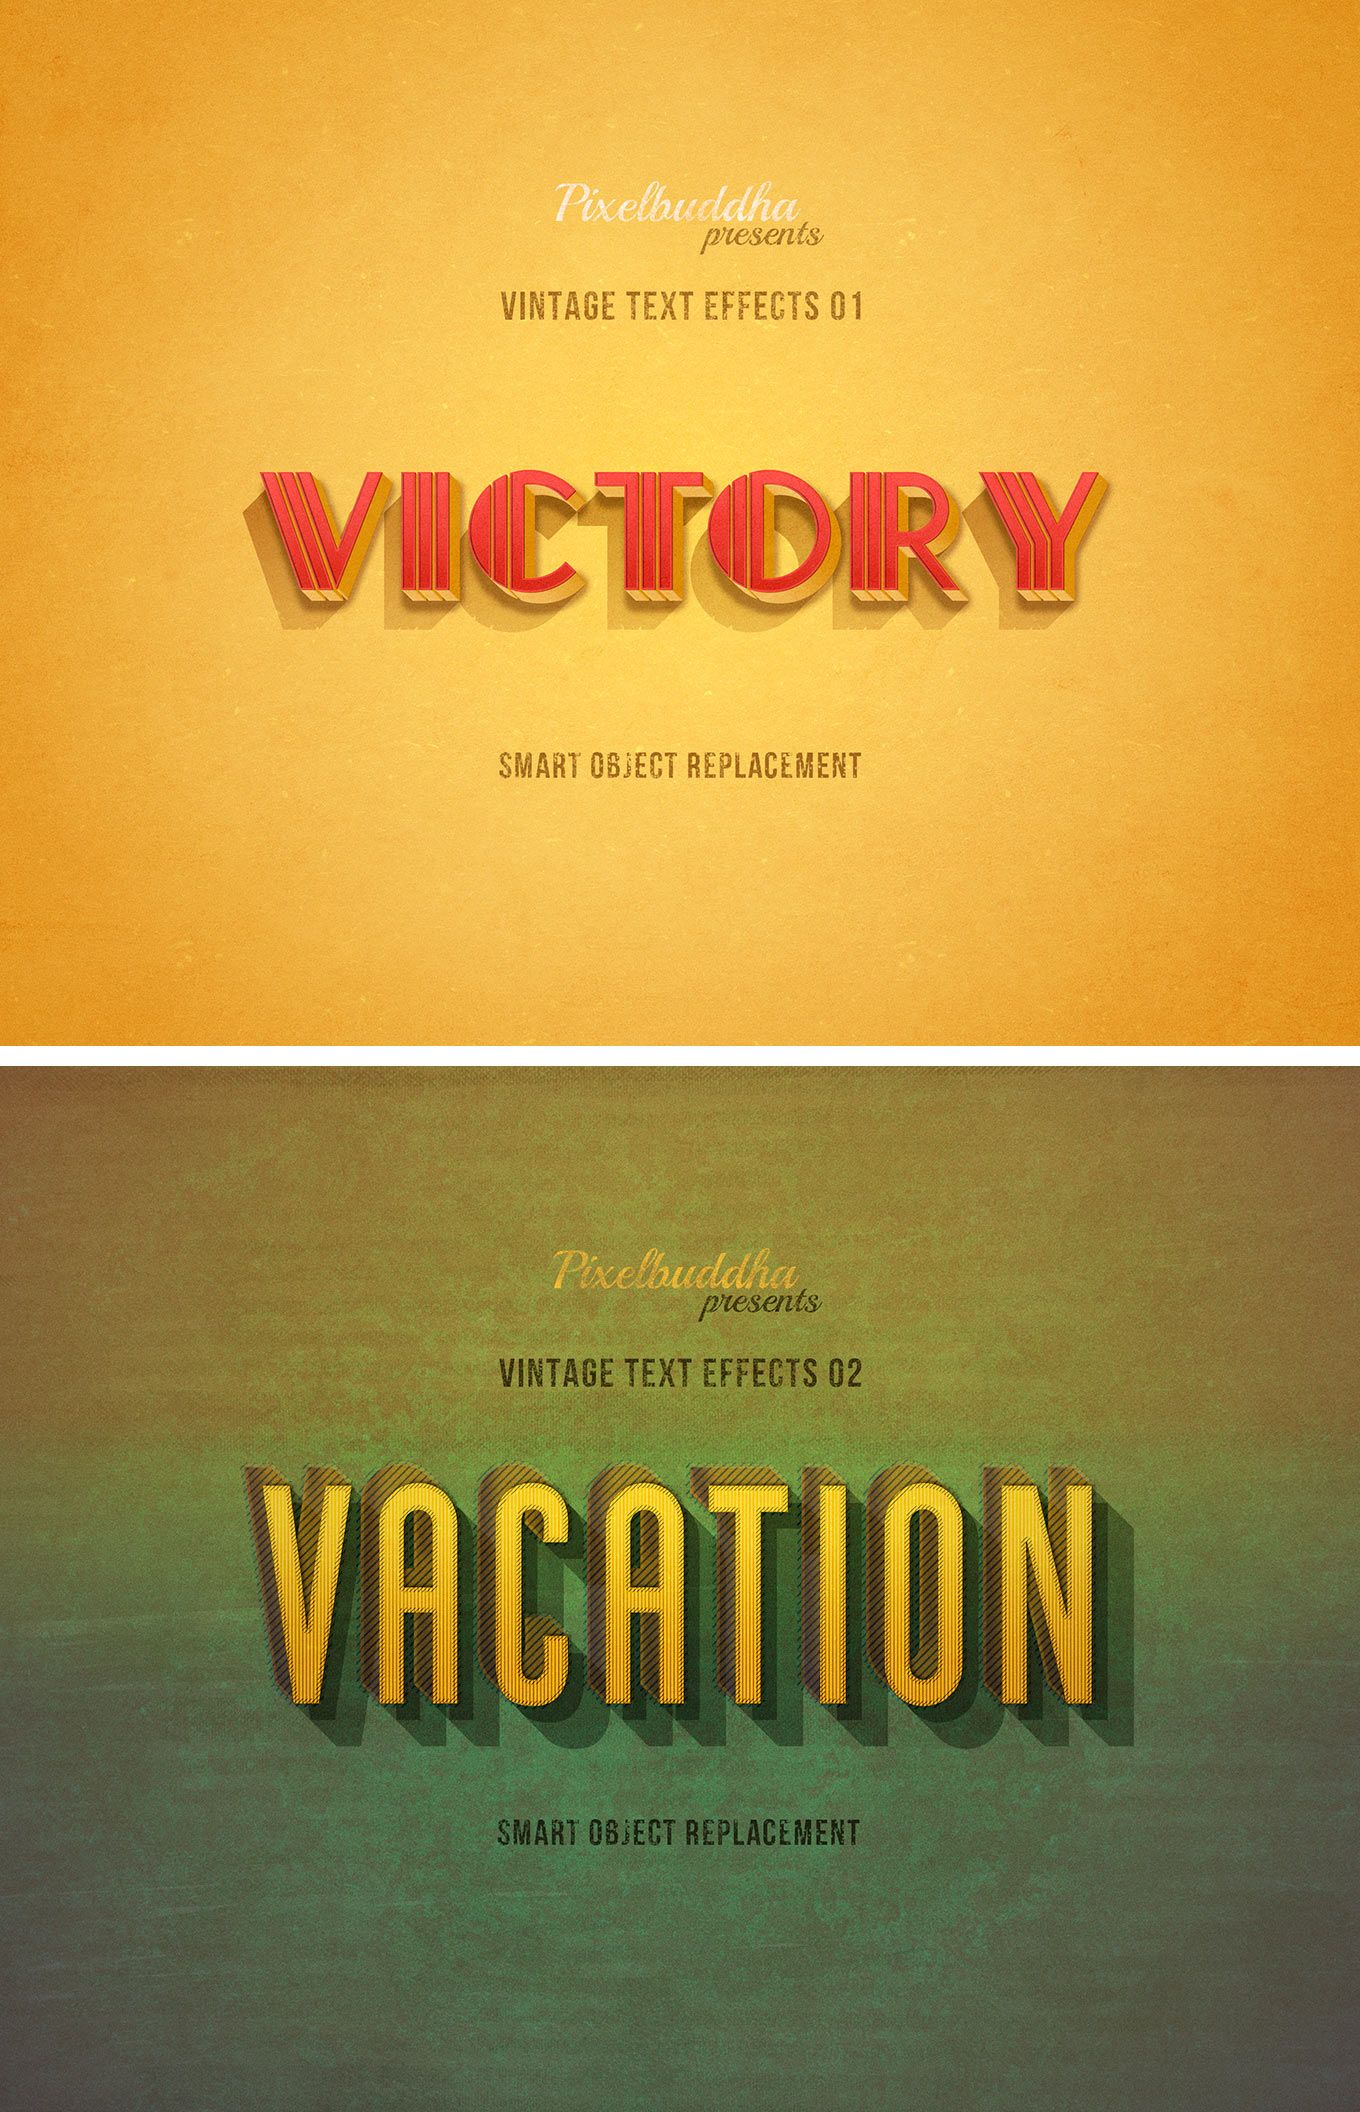 Authentic Vintage Text Effects Vintage Text Text Effects Text